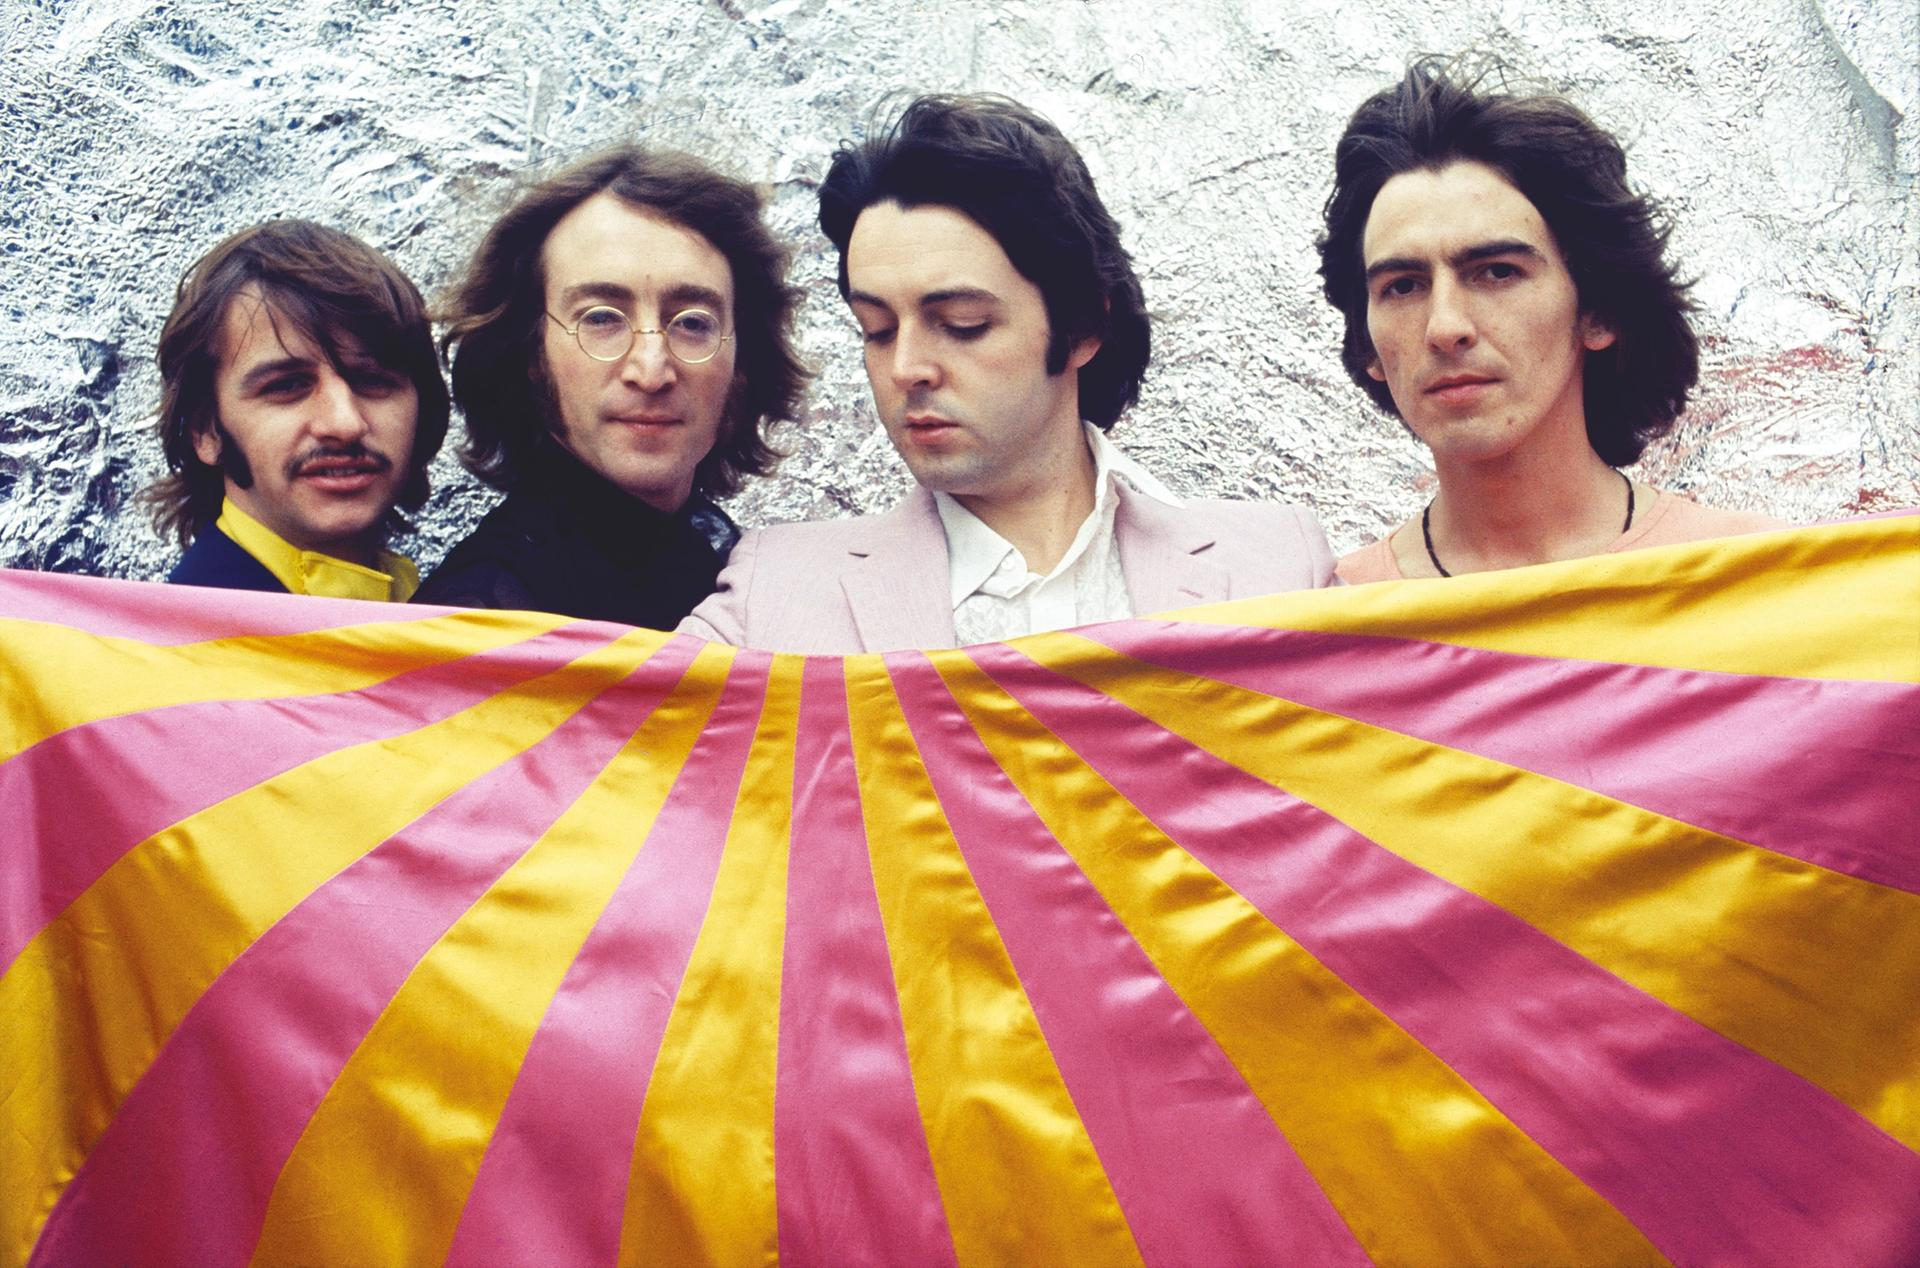 Photo session at Thomson House, London. 28 July 1968 © Apple Corps Ltd.